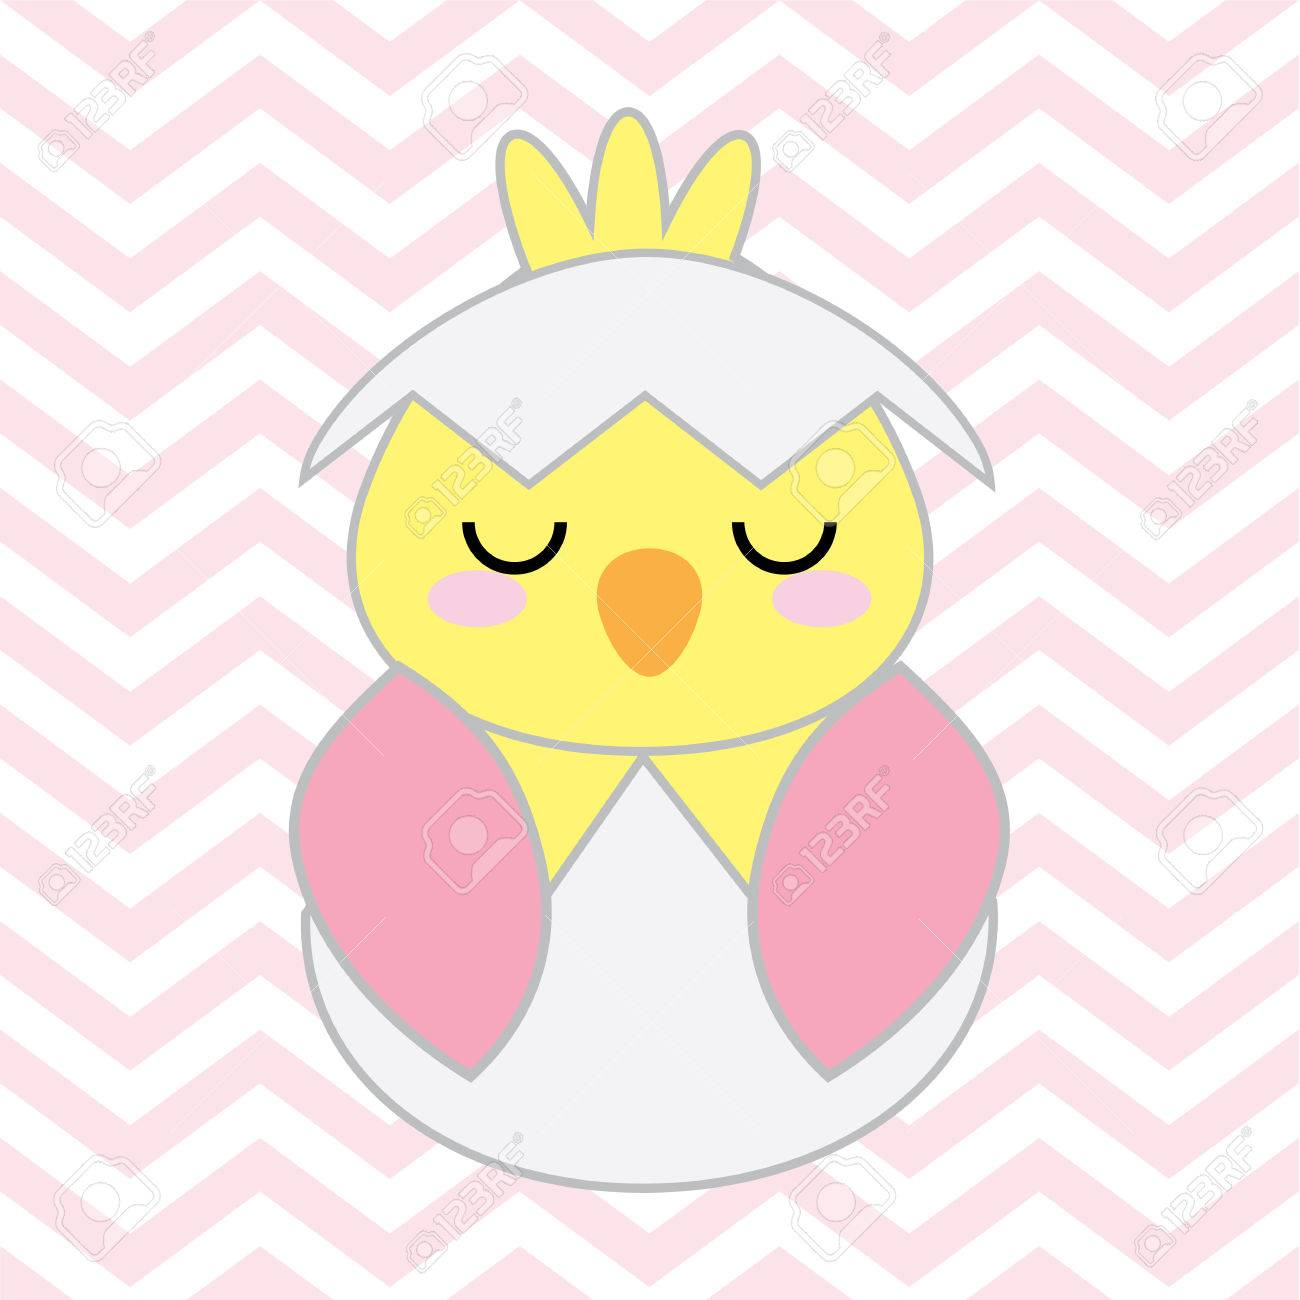 Baby Shower Illustration With Cute Pink Baby Chick On Chevron ...